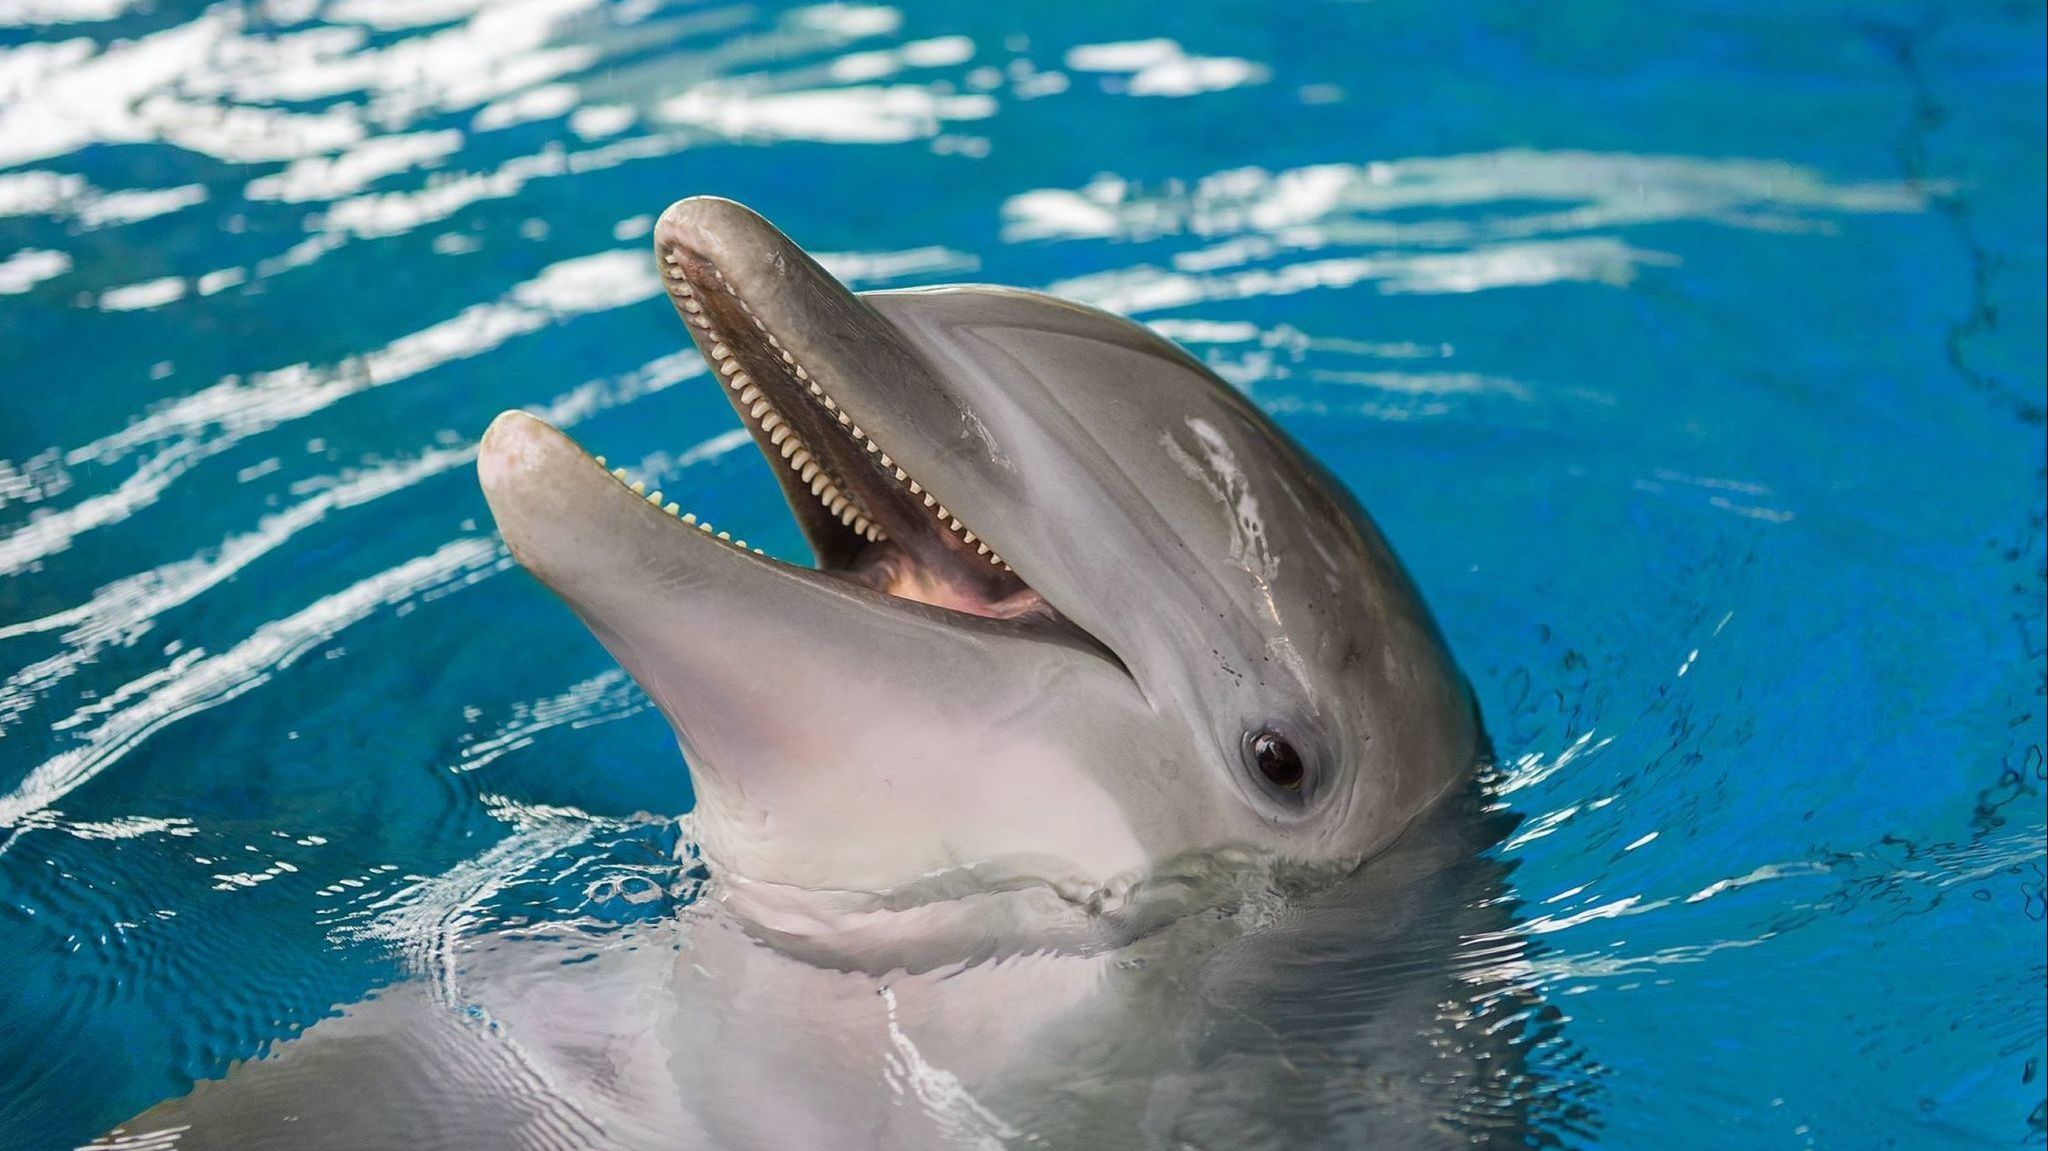 Dolphin dies at the National Aquarium after months-long illness